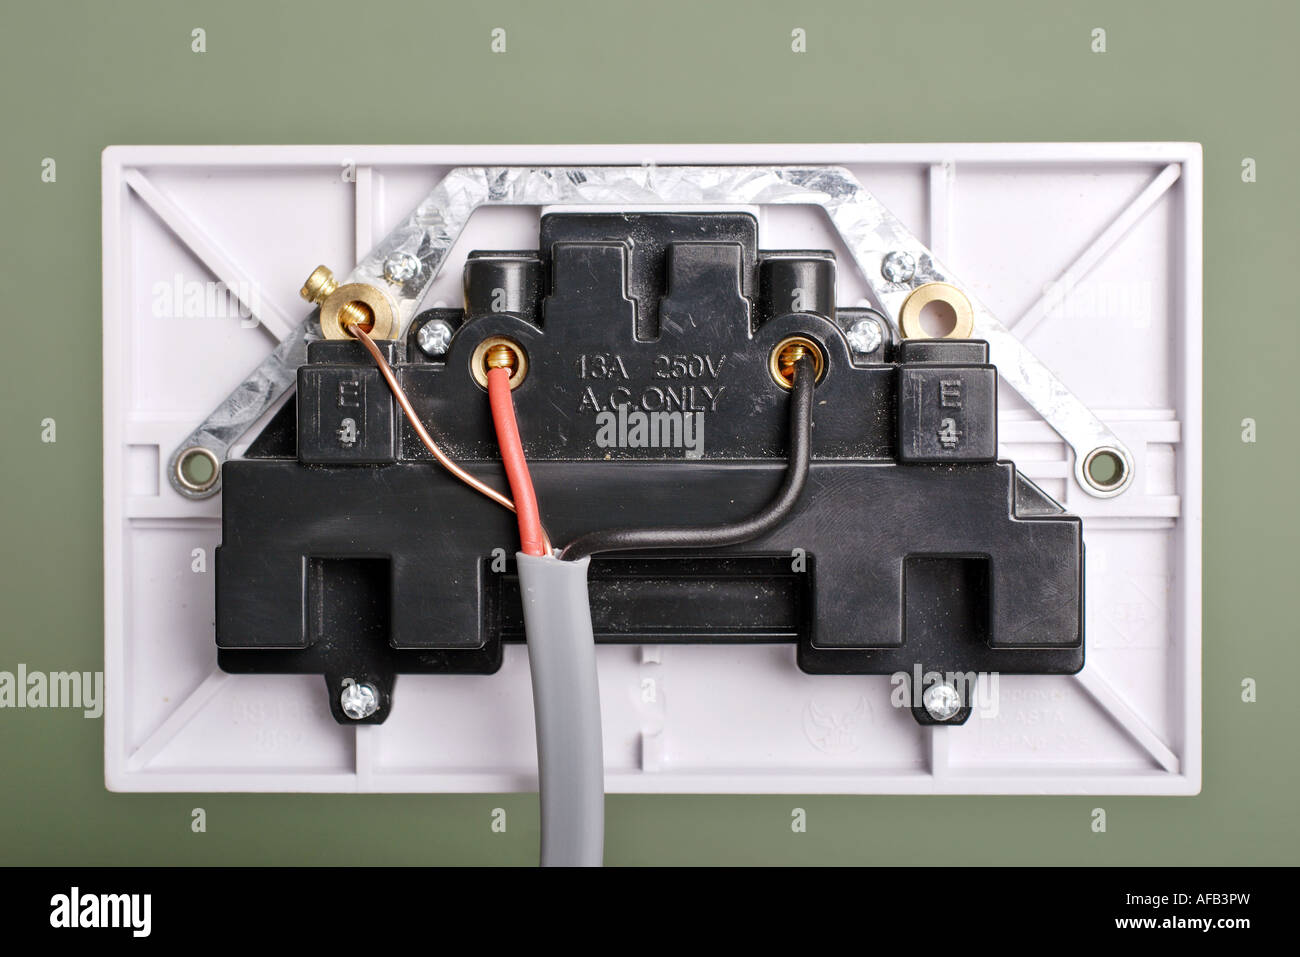 rear view of 3 pin electrical socket wiring stock photo 13890624 rh alamy com